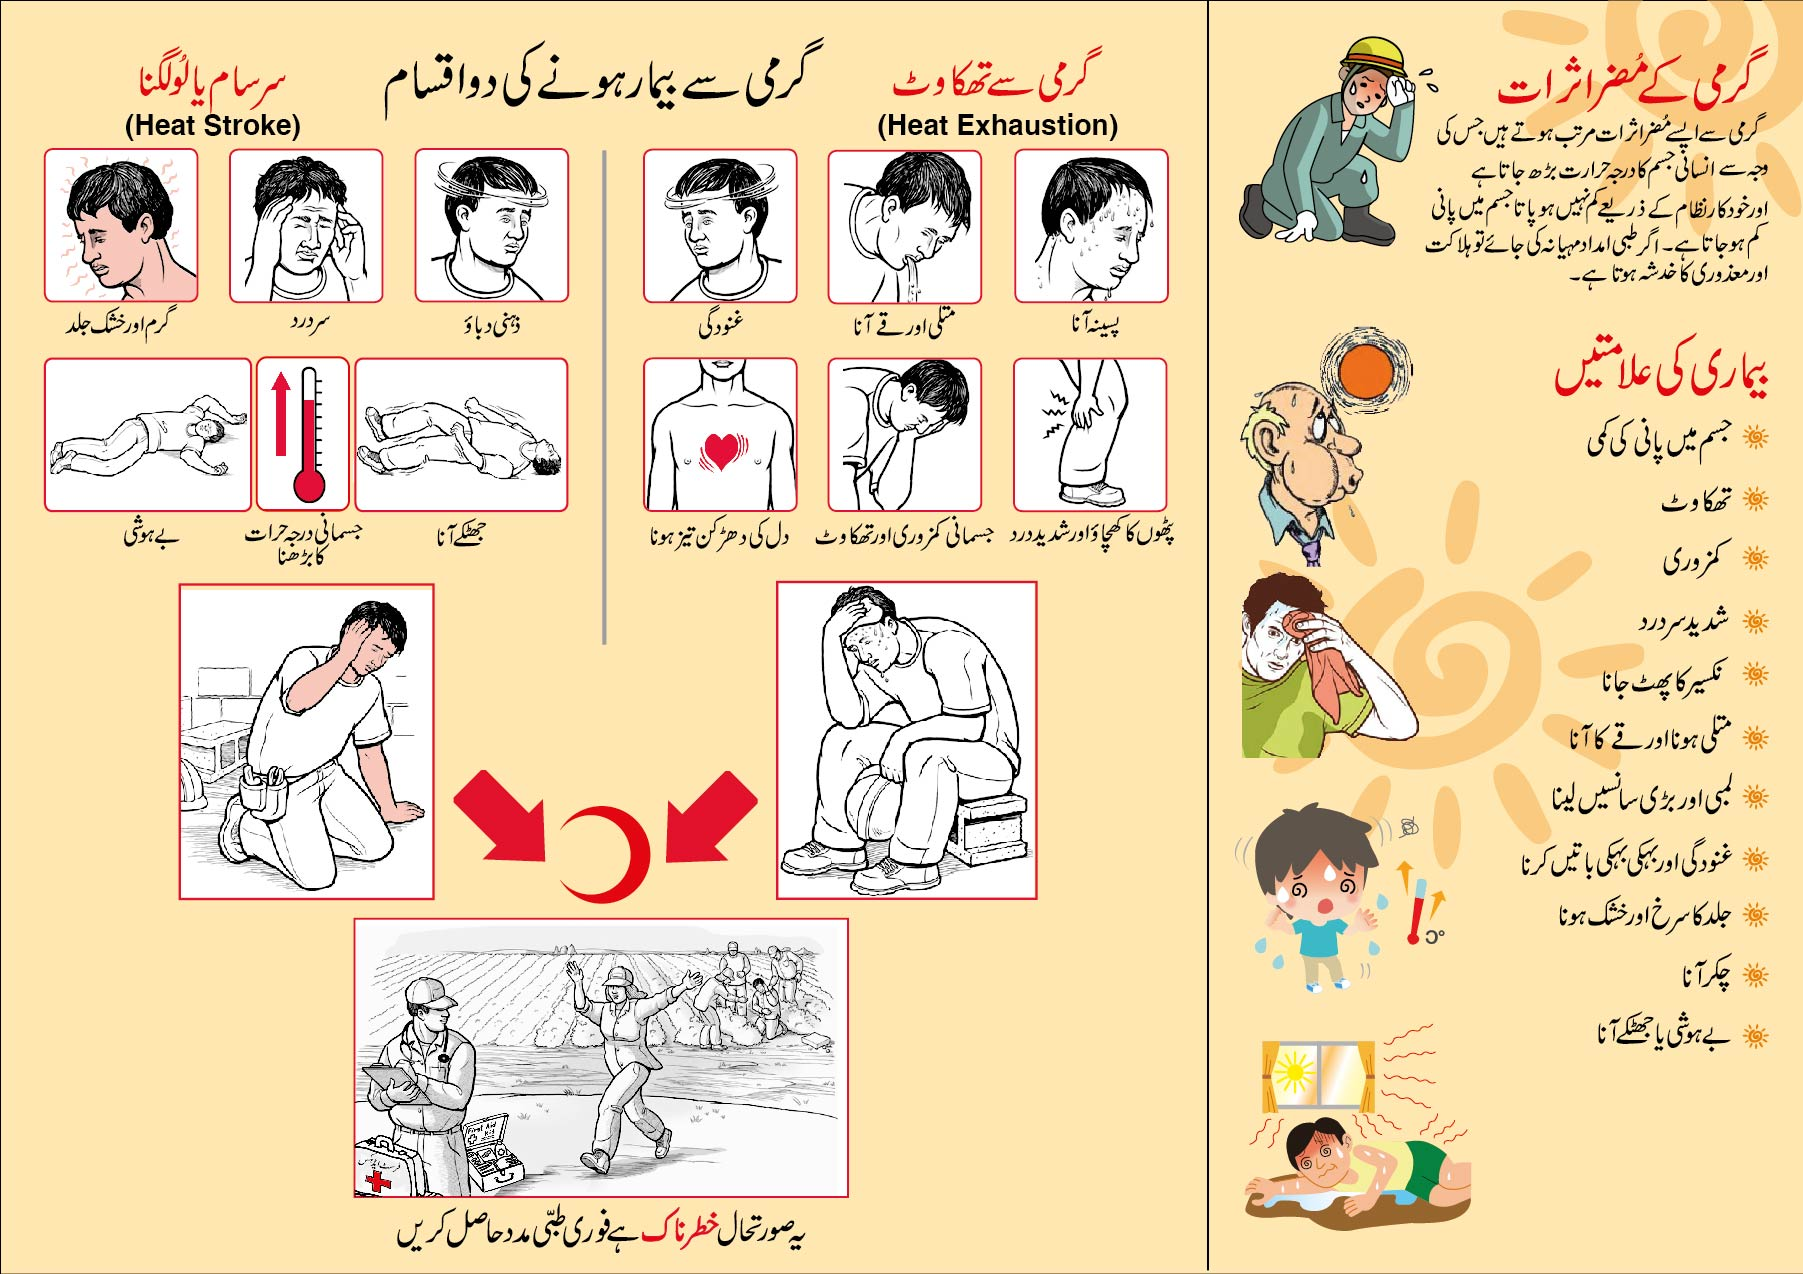 red crescent started awareness campaign on heat stroke and